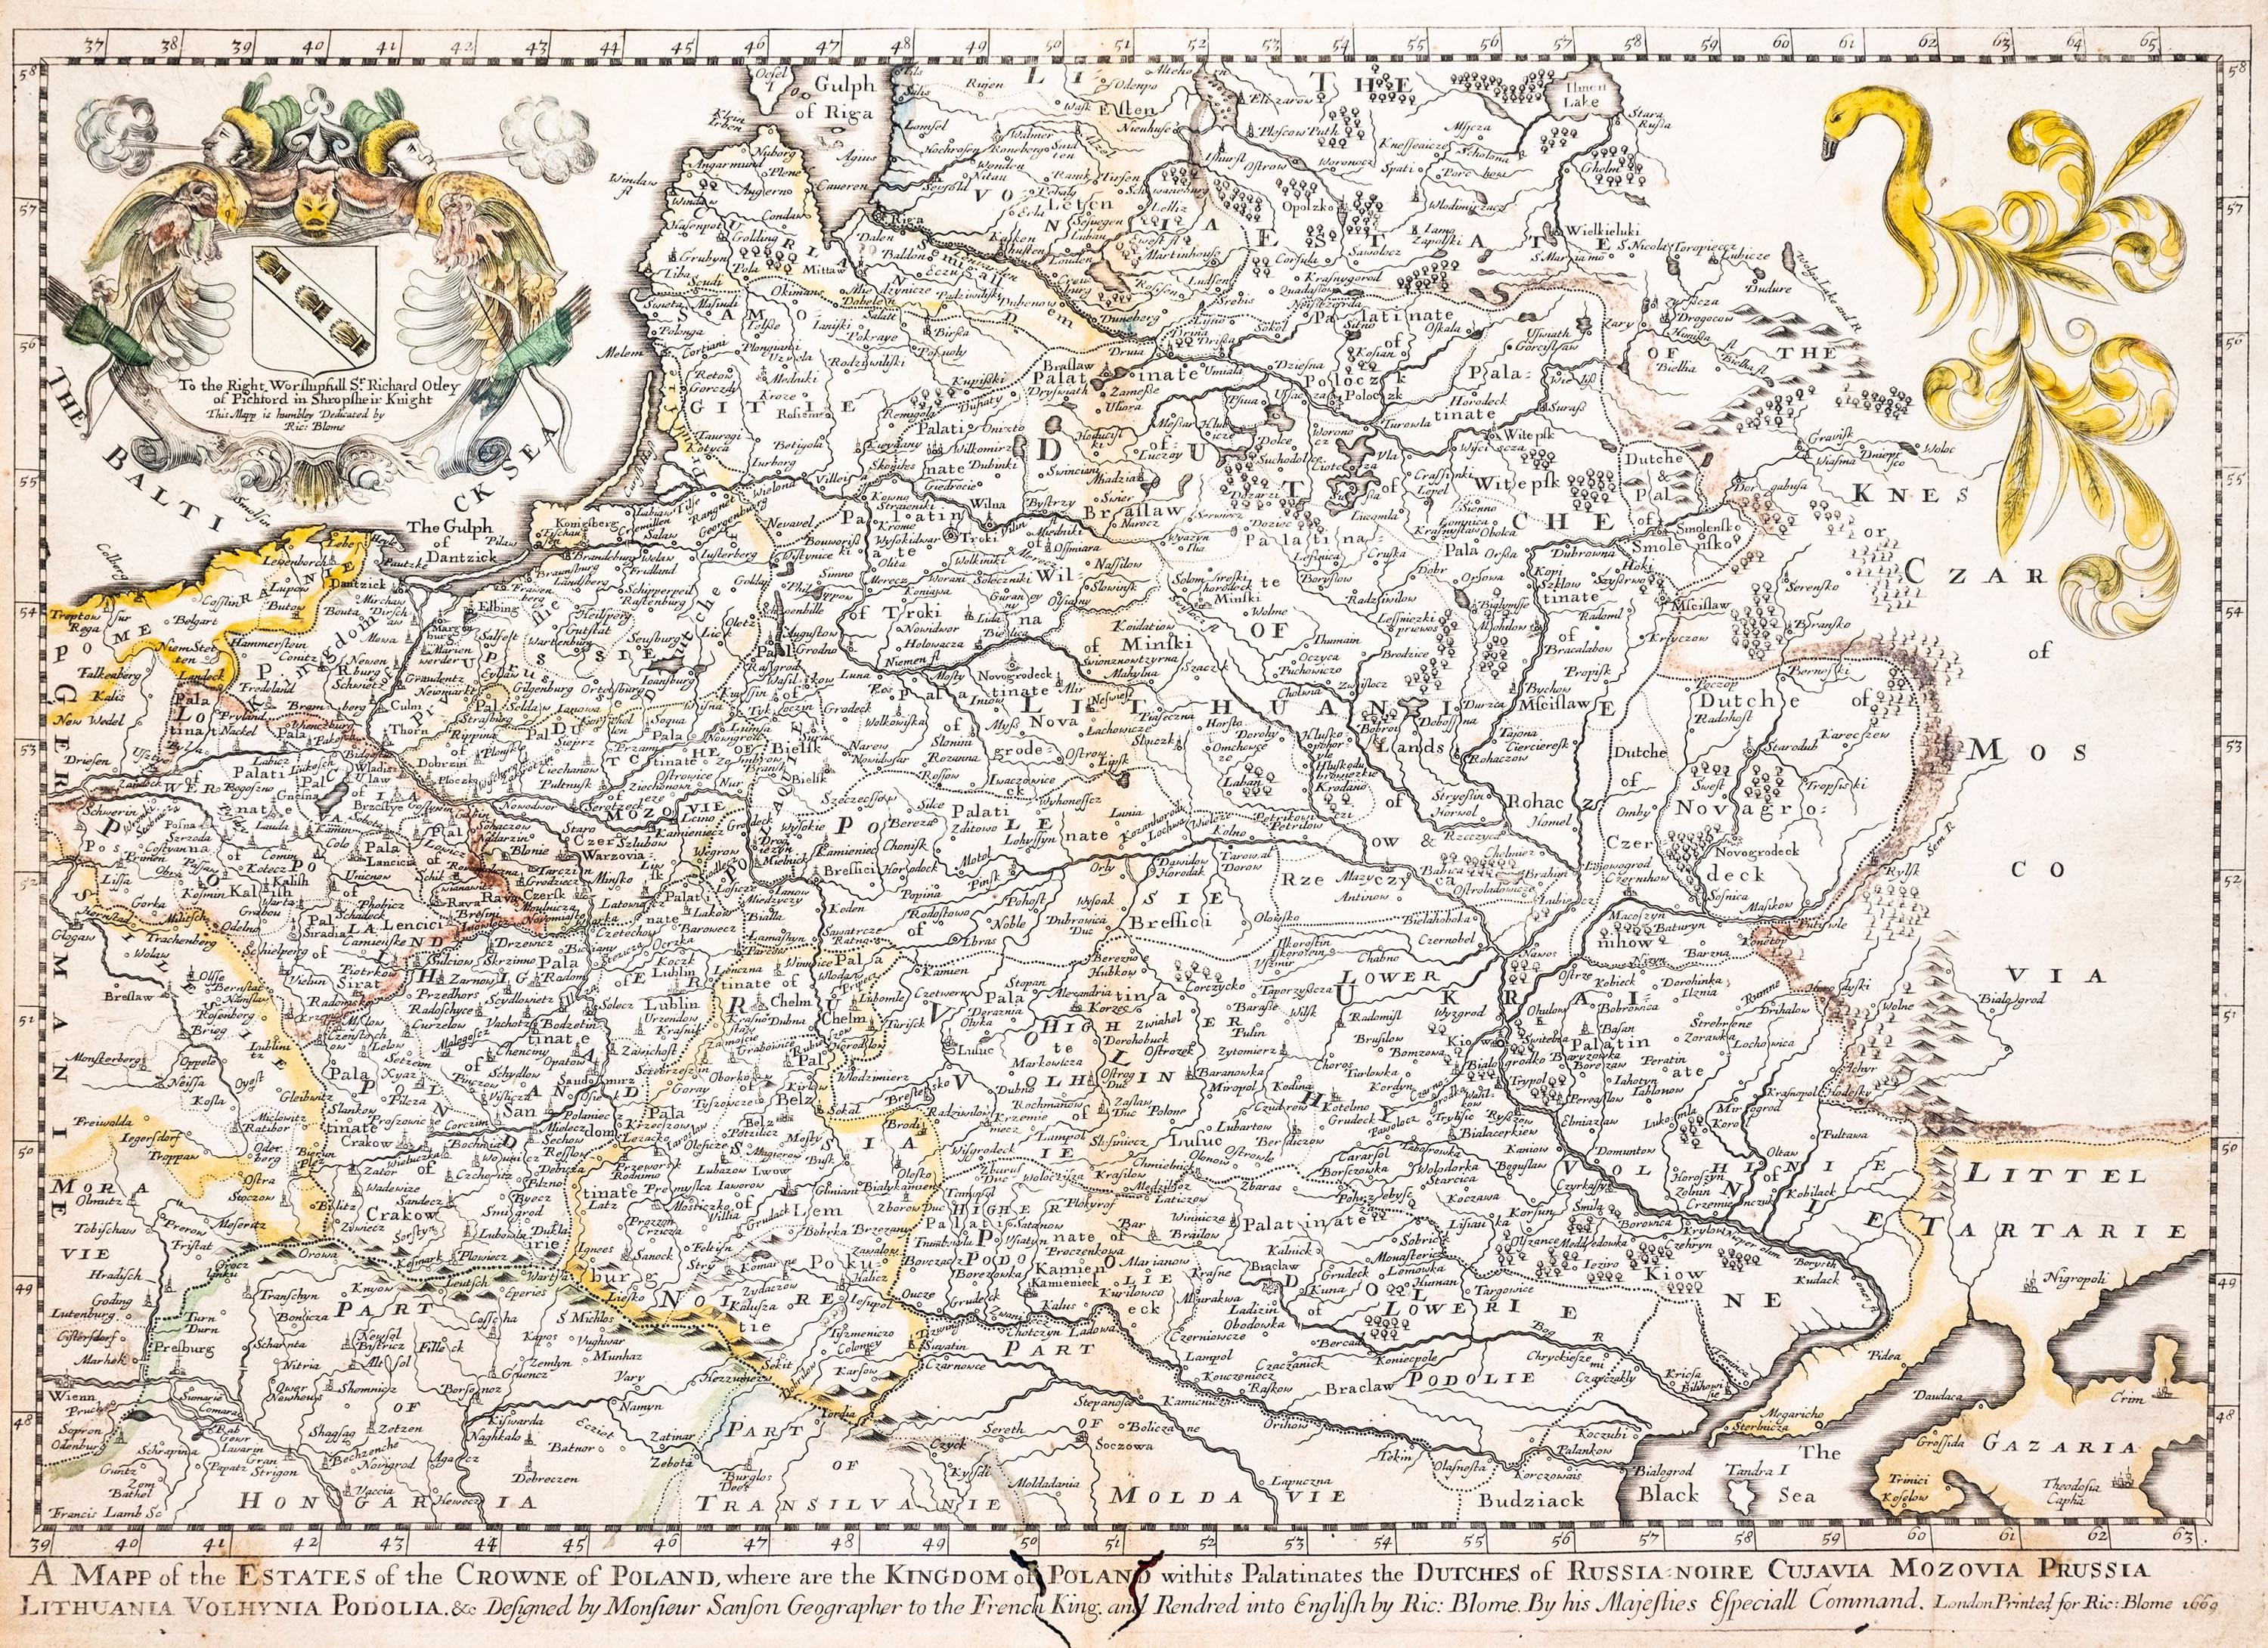 Richard Blome | A Mapp of the Estates of the Crowne of Poland…